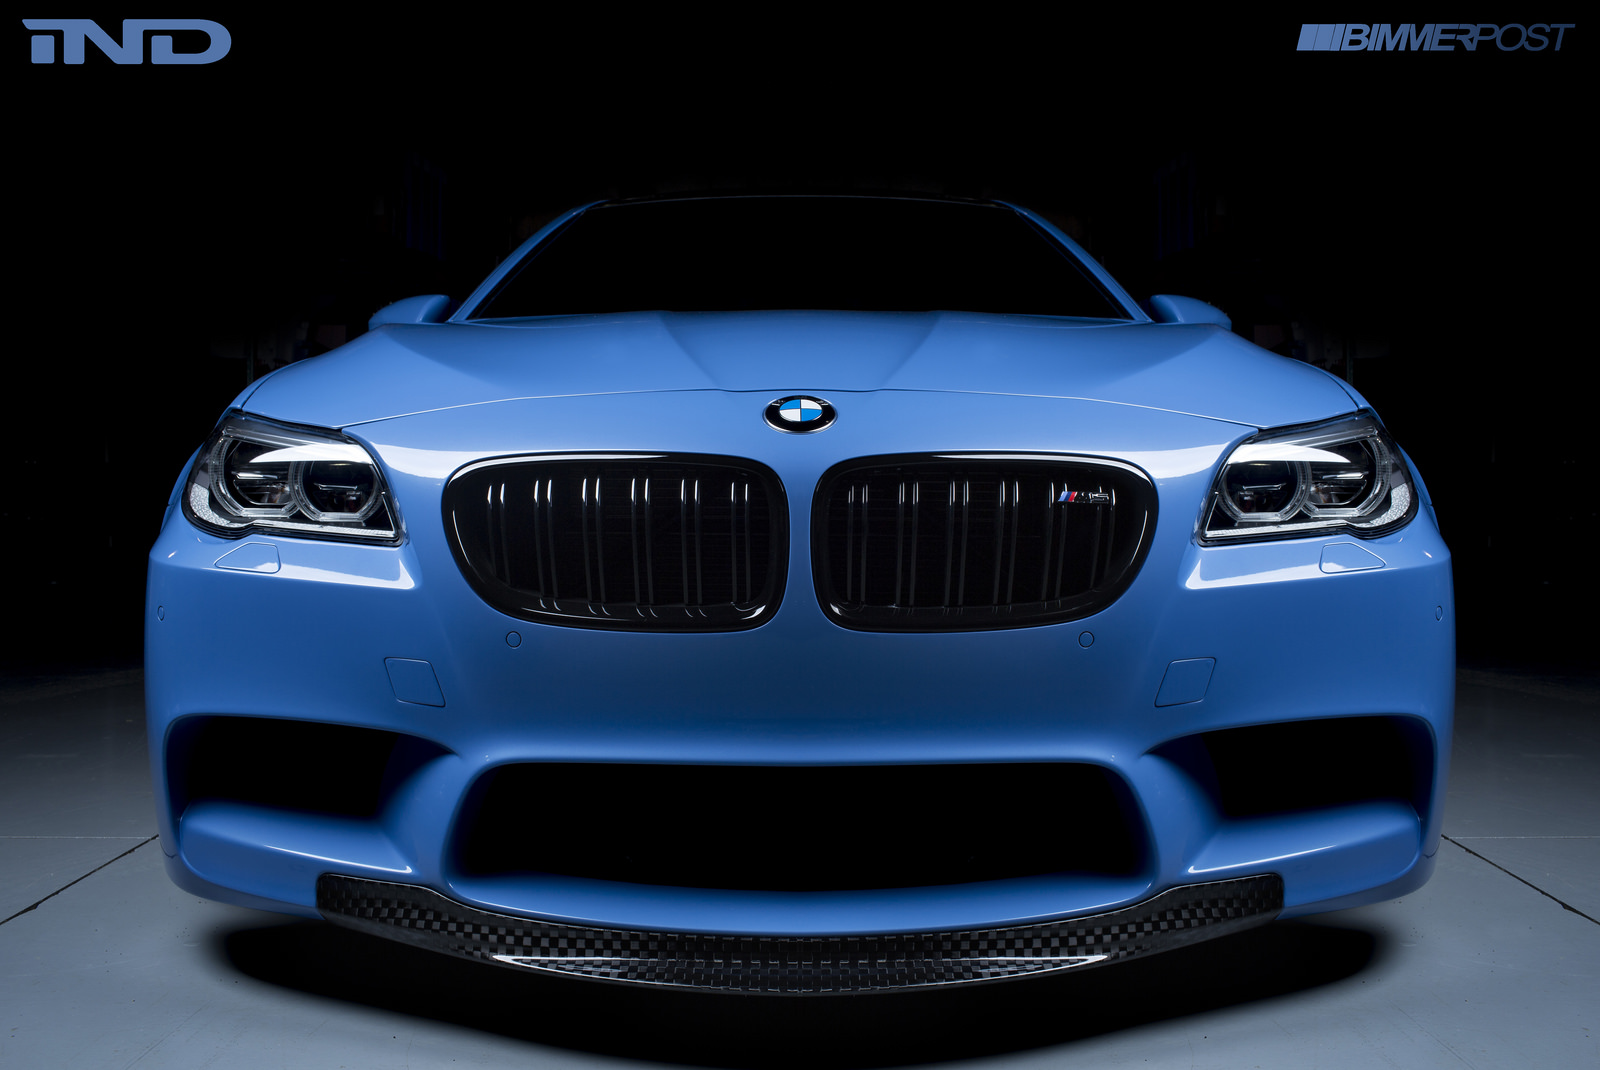 Project Blue Deluge Ind Bmw F10 M5 In Yas Marina Blue